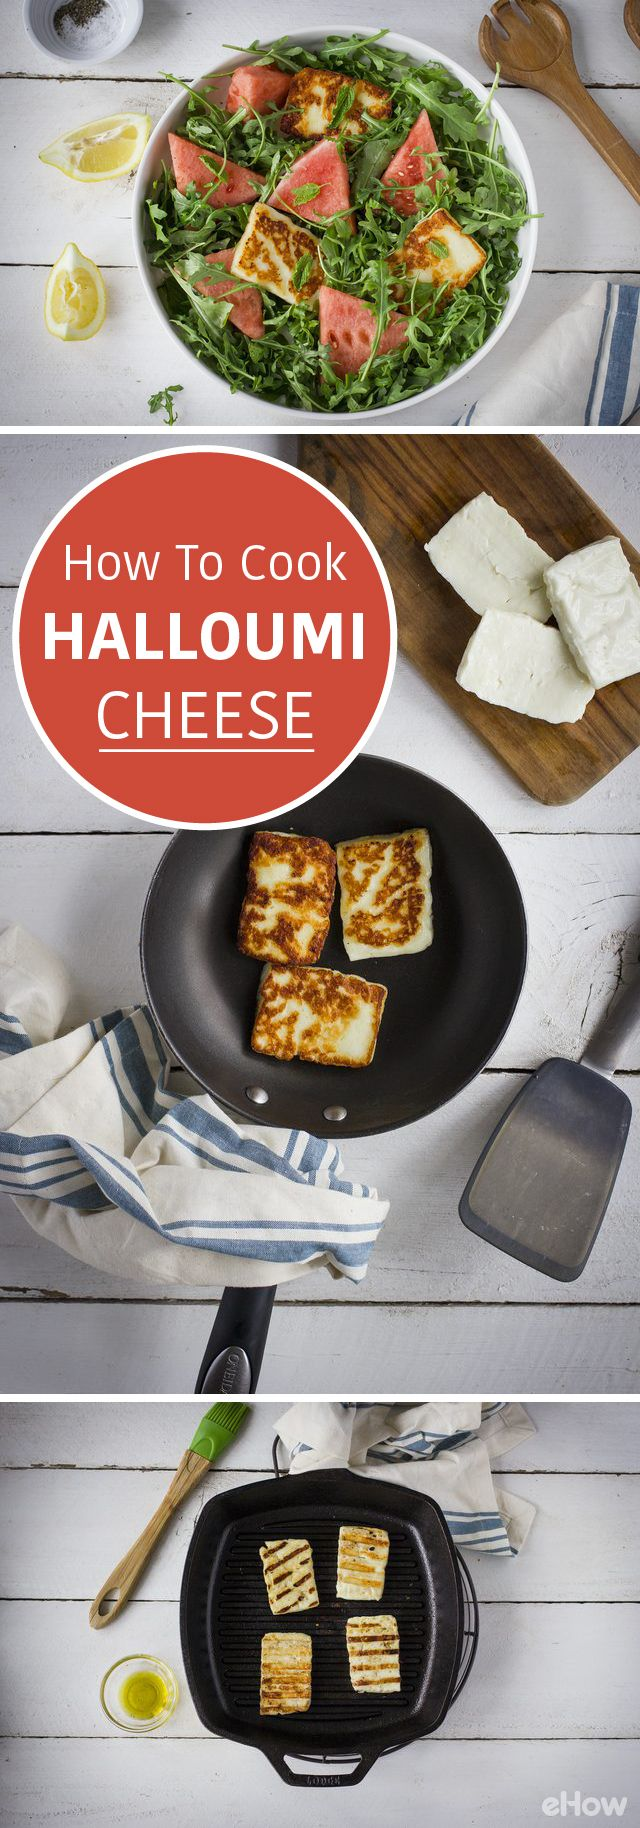 Halloumi is both mild yet salty, making it the perfect companion to a variety of flavors. You can pan-sear it, fry it, or grill it, due to its high melting point. This cheese tastes great on salads, sandwiches, or even when paired with some fruits, like in this watermelon and halloumi salad.  http://www.ehow.com/how_7684226_cook-halloumi-cheese.html?utm_source=pinterest.com&utm_medium=referral&utm_content=freestyle&utm_campaign=fanpage